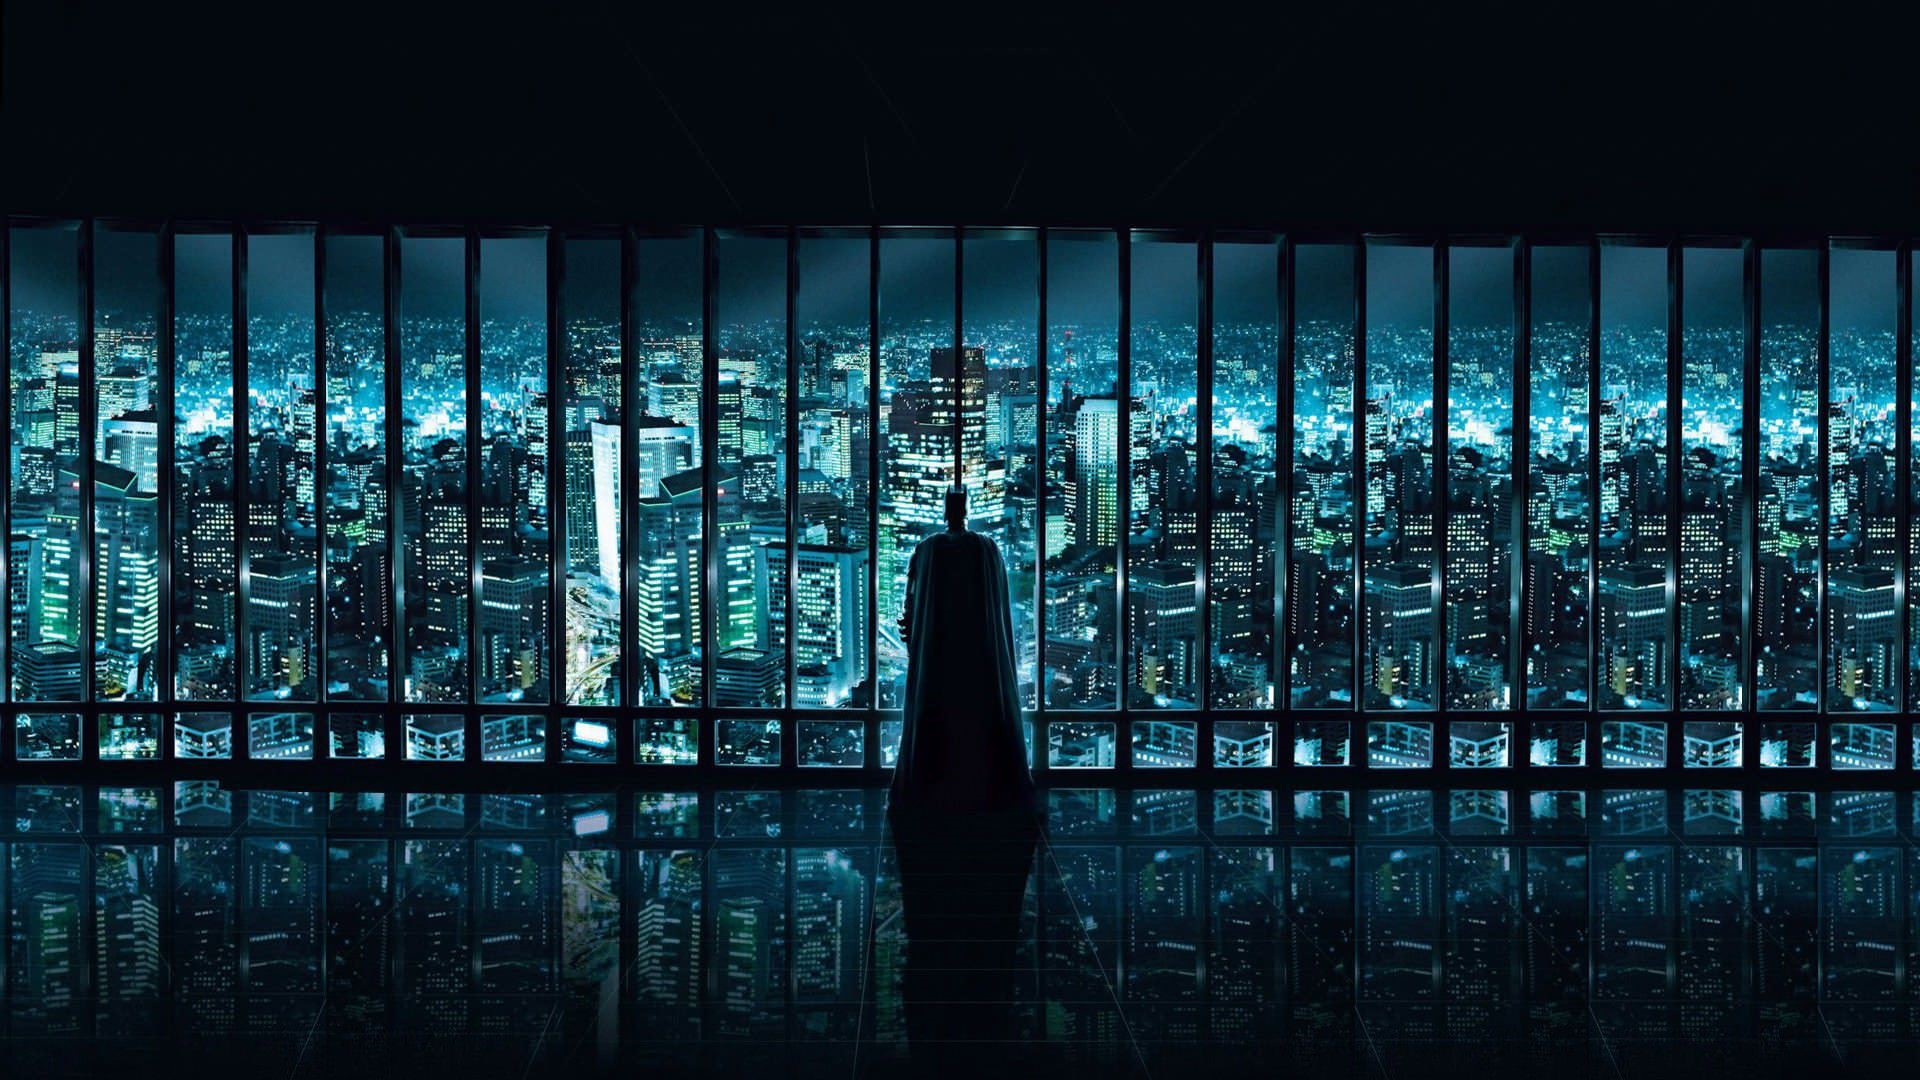 Batman Wallpapers for PC